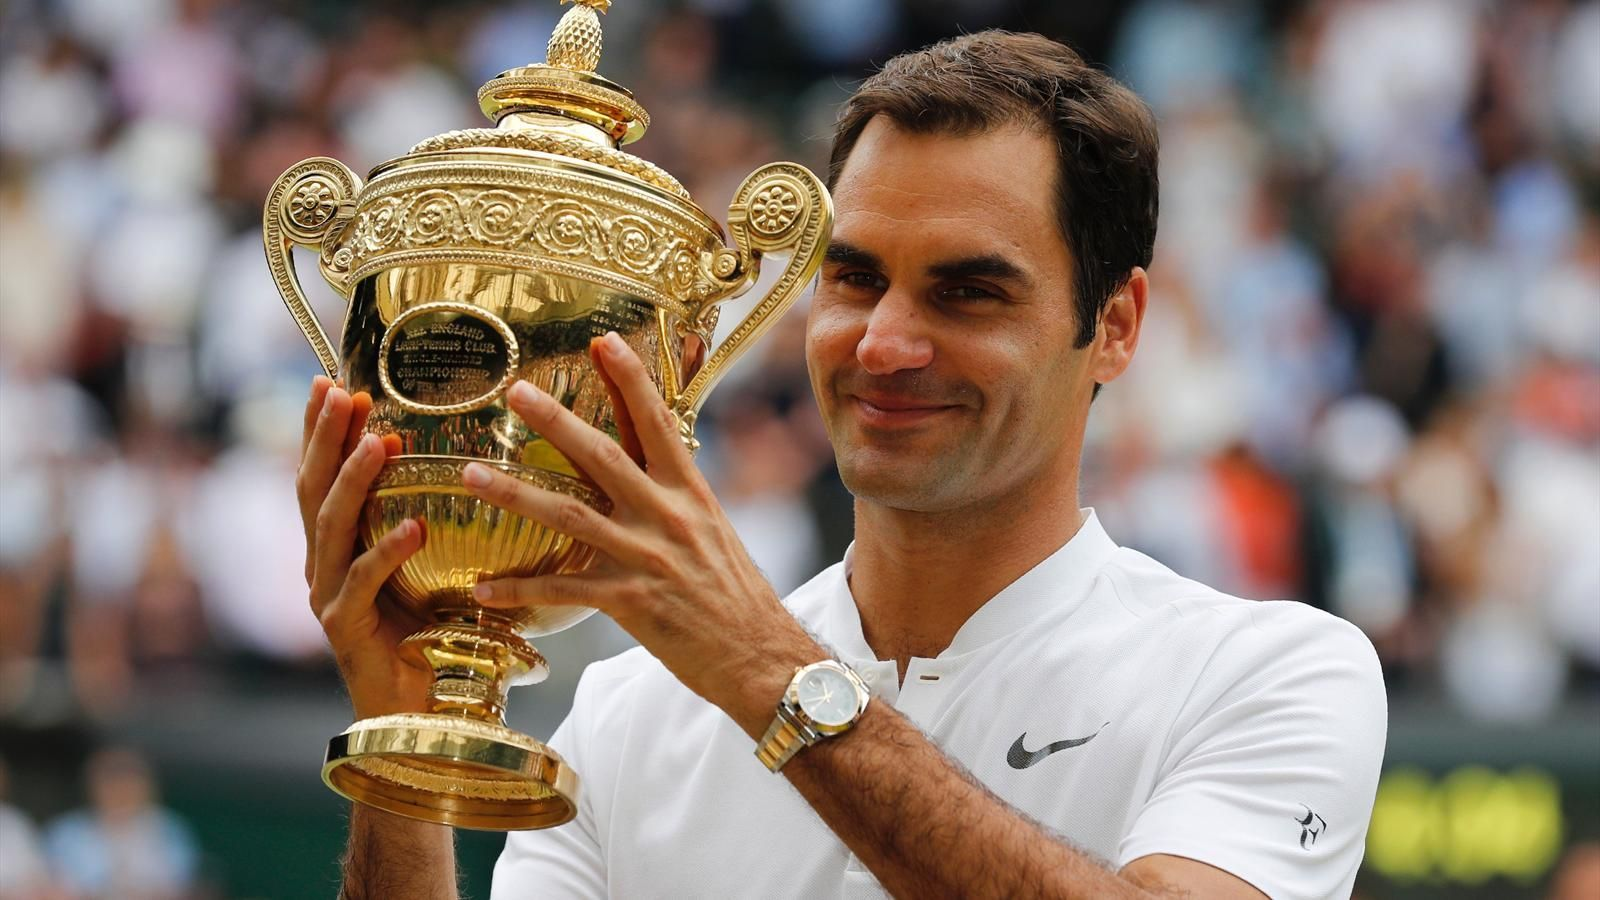 Roger Federer win over Marin Cilic. A record eighth